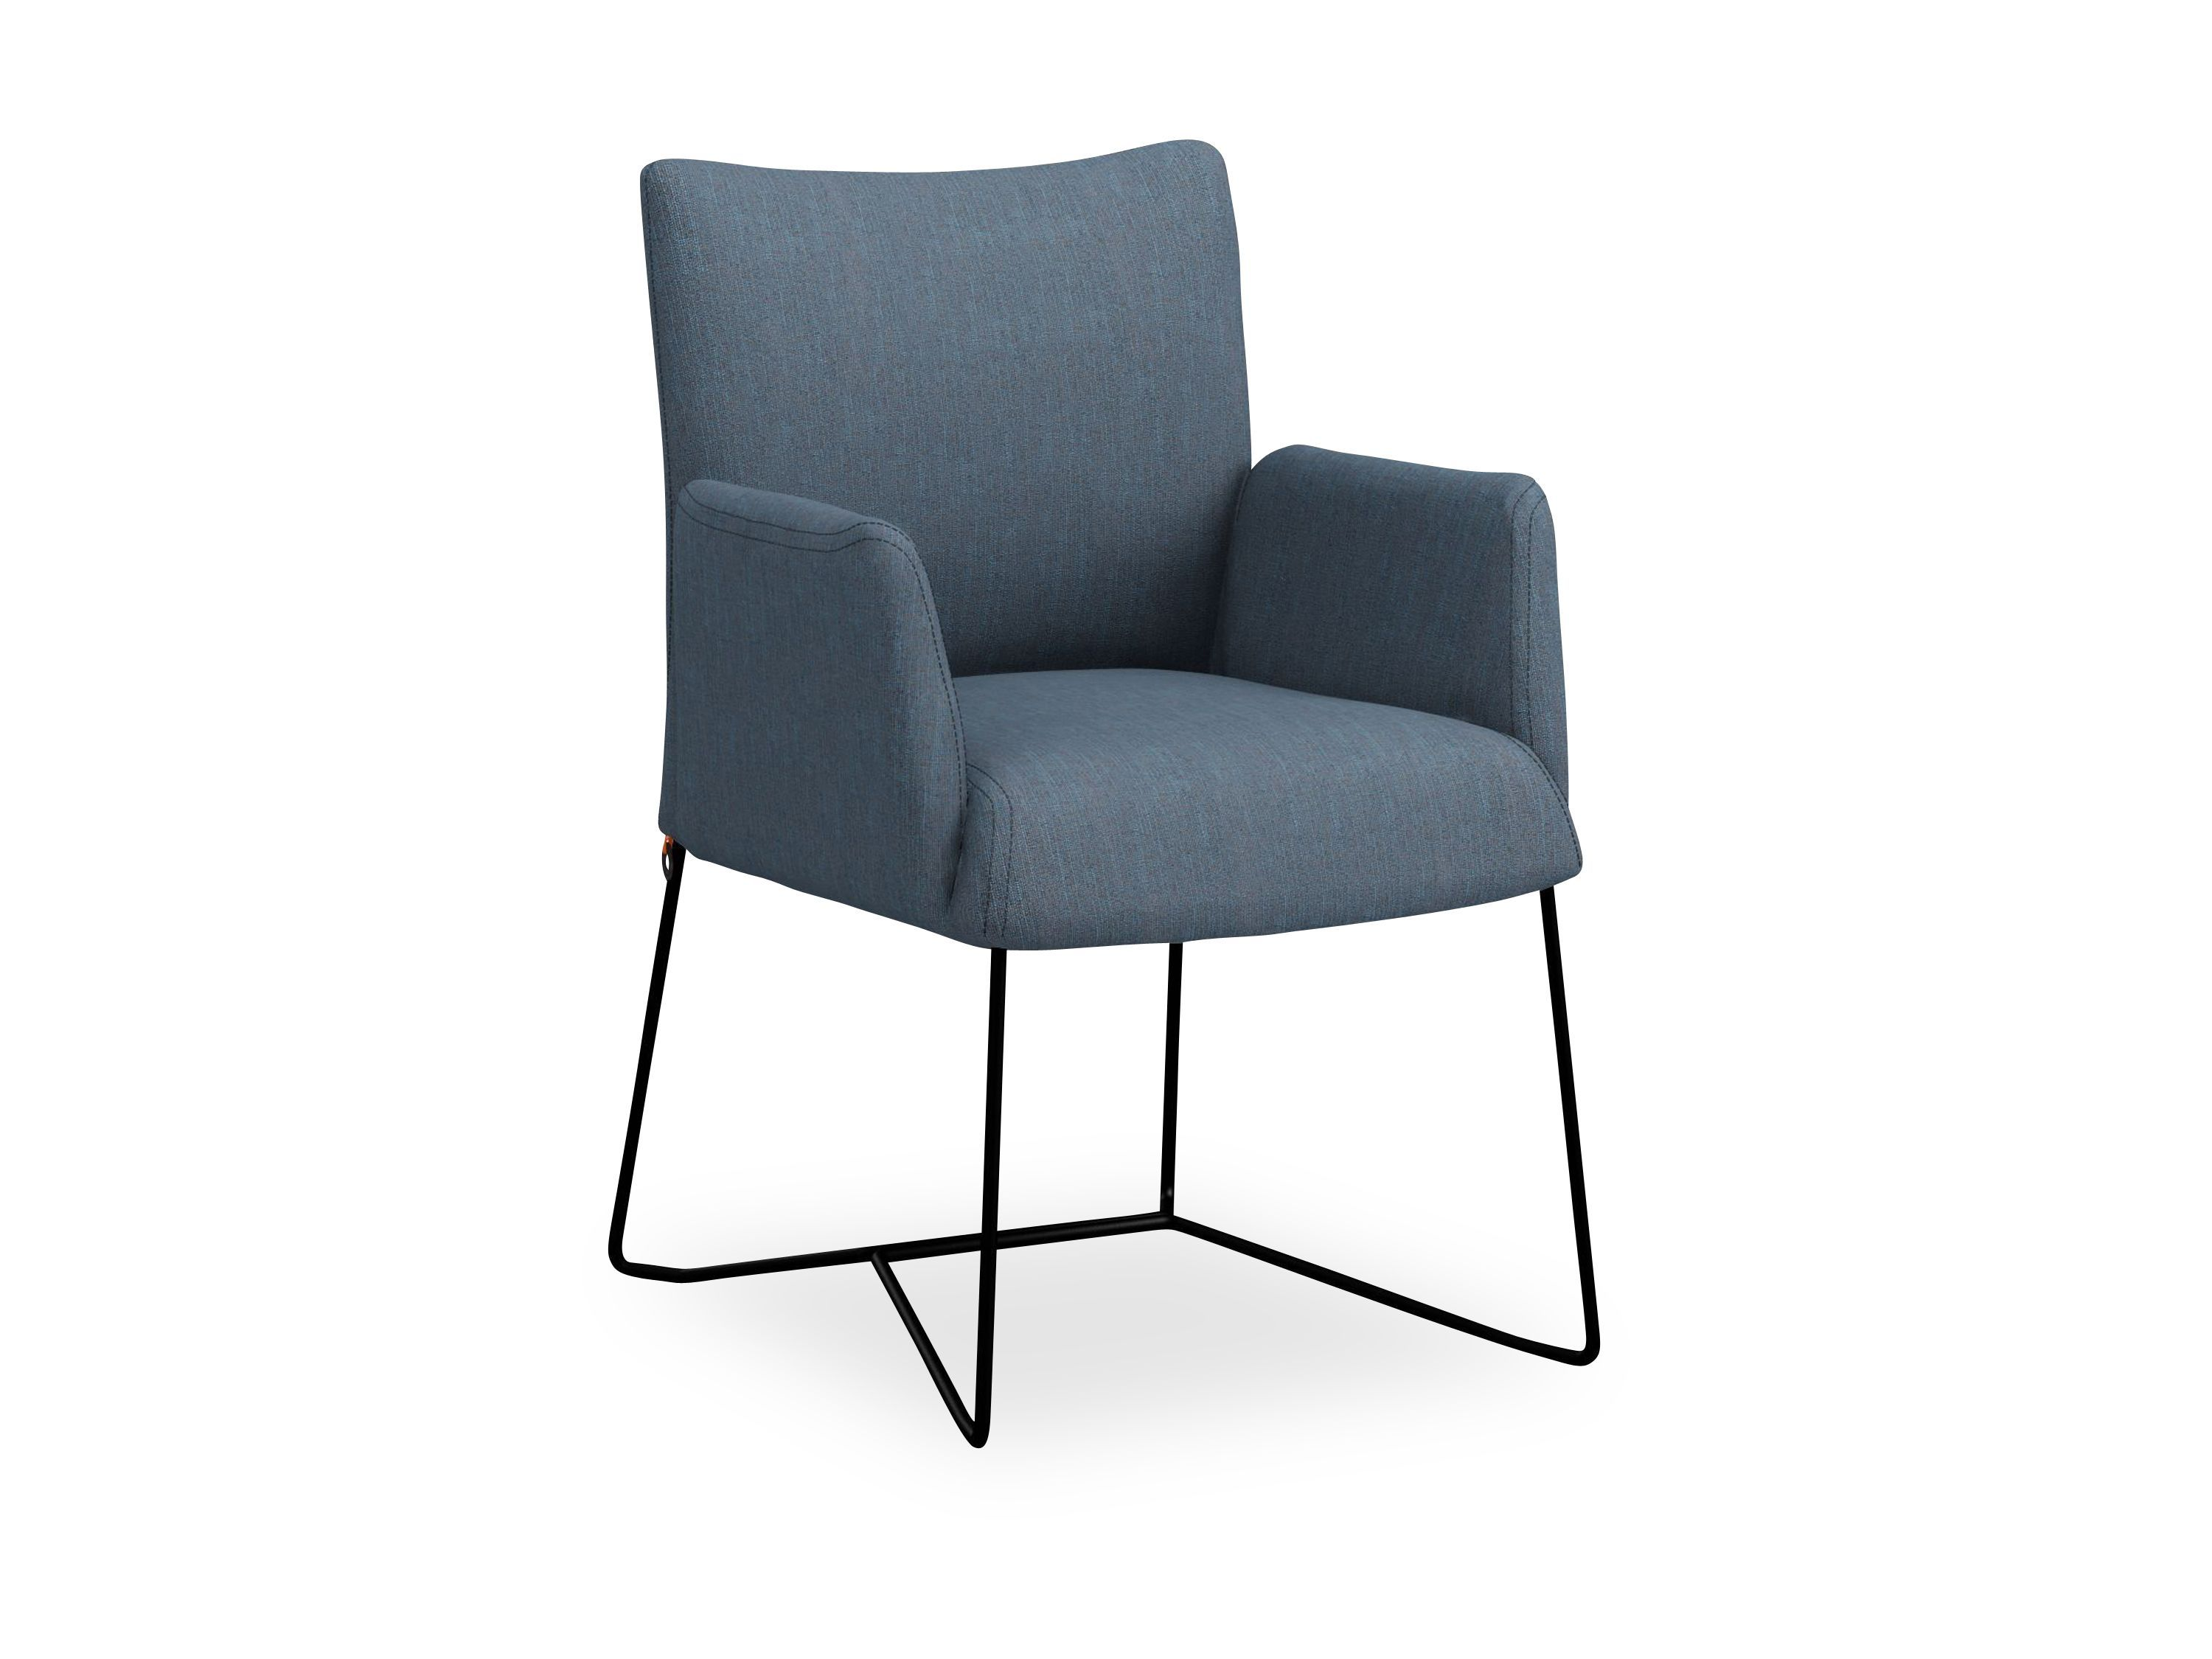 Polsterstuhl Oliver H47 Pm A Outdoor Chairs Outdoor Furniture